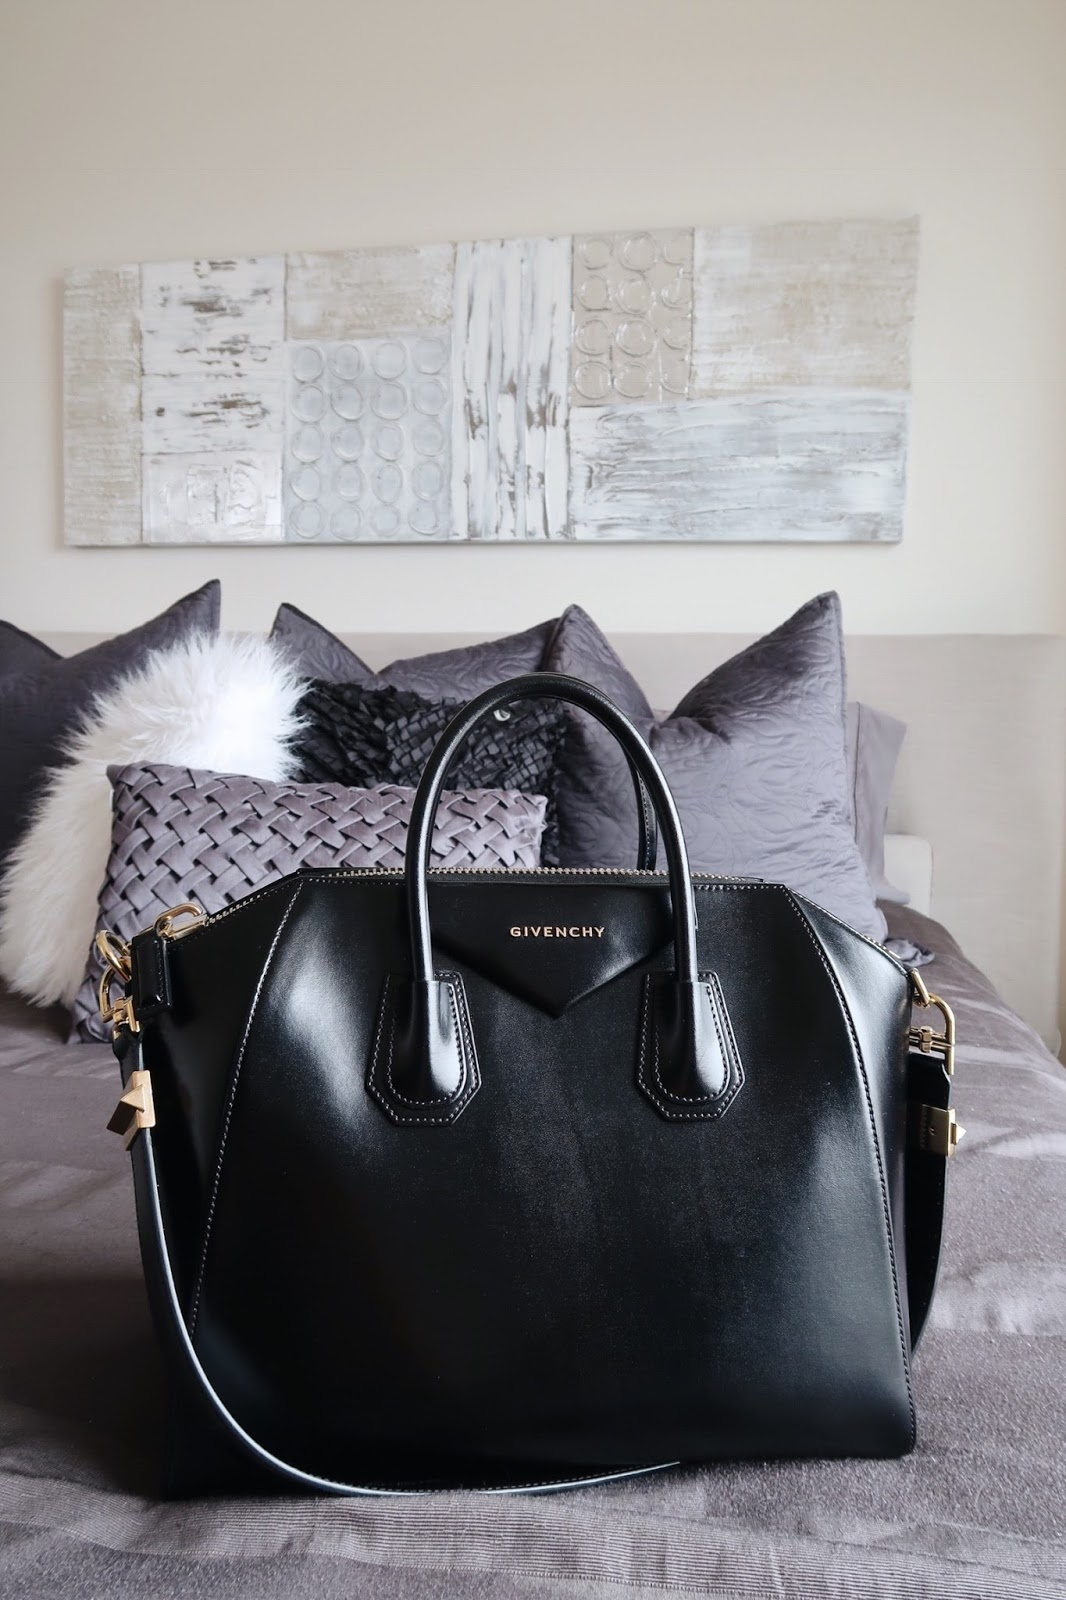 eaa00370b39 It's been two years since I purchased my first designer bag, the Givenchy  Antigona, during our first trip to Italy. It was such an exciting day, ...